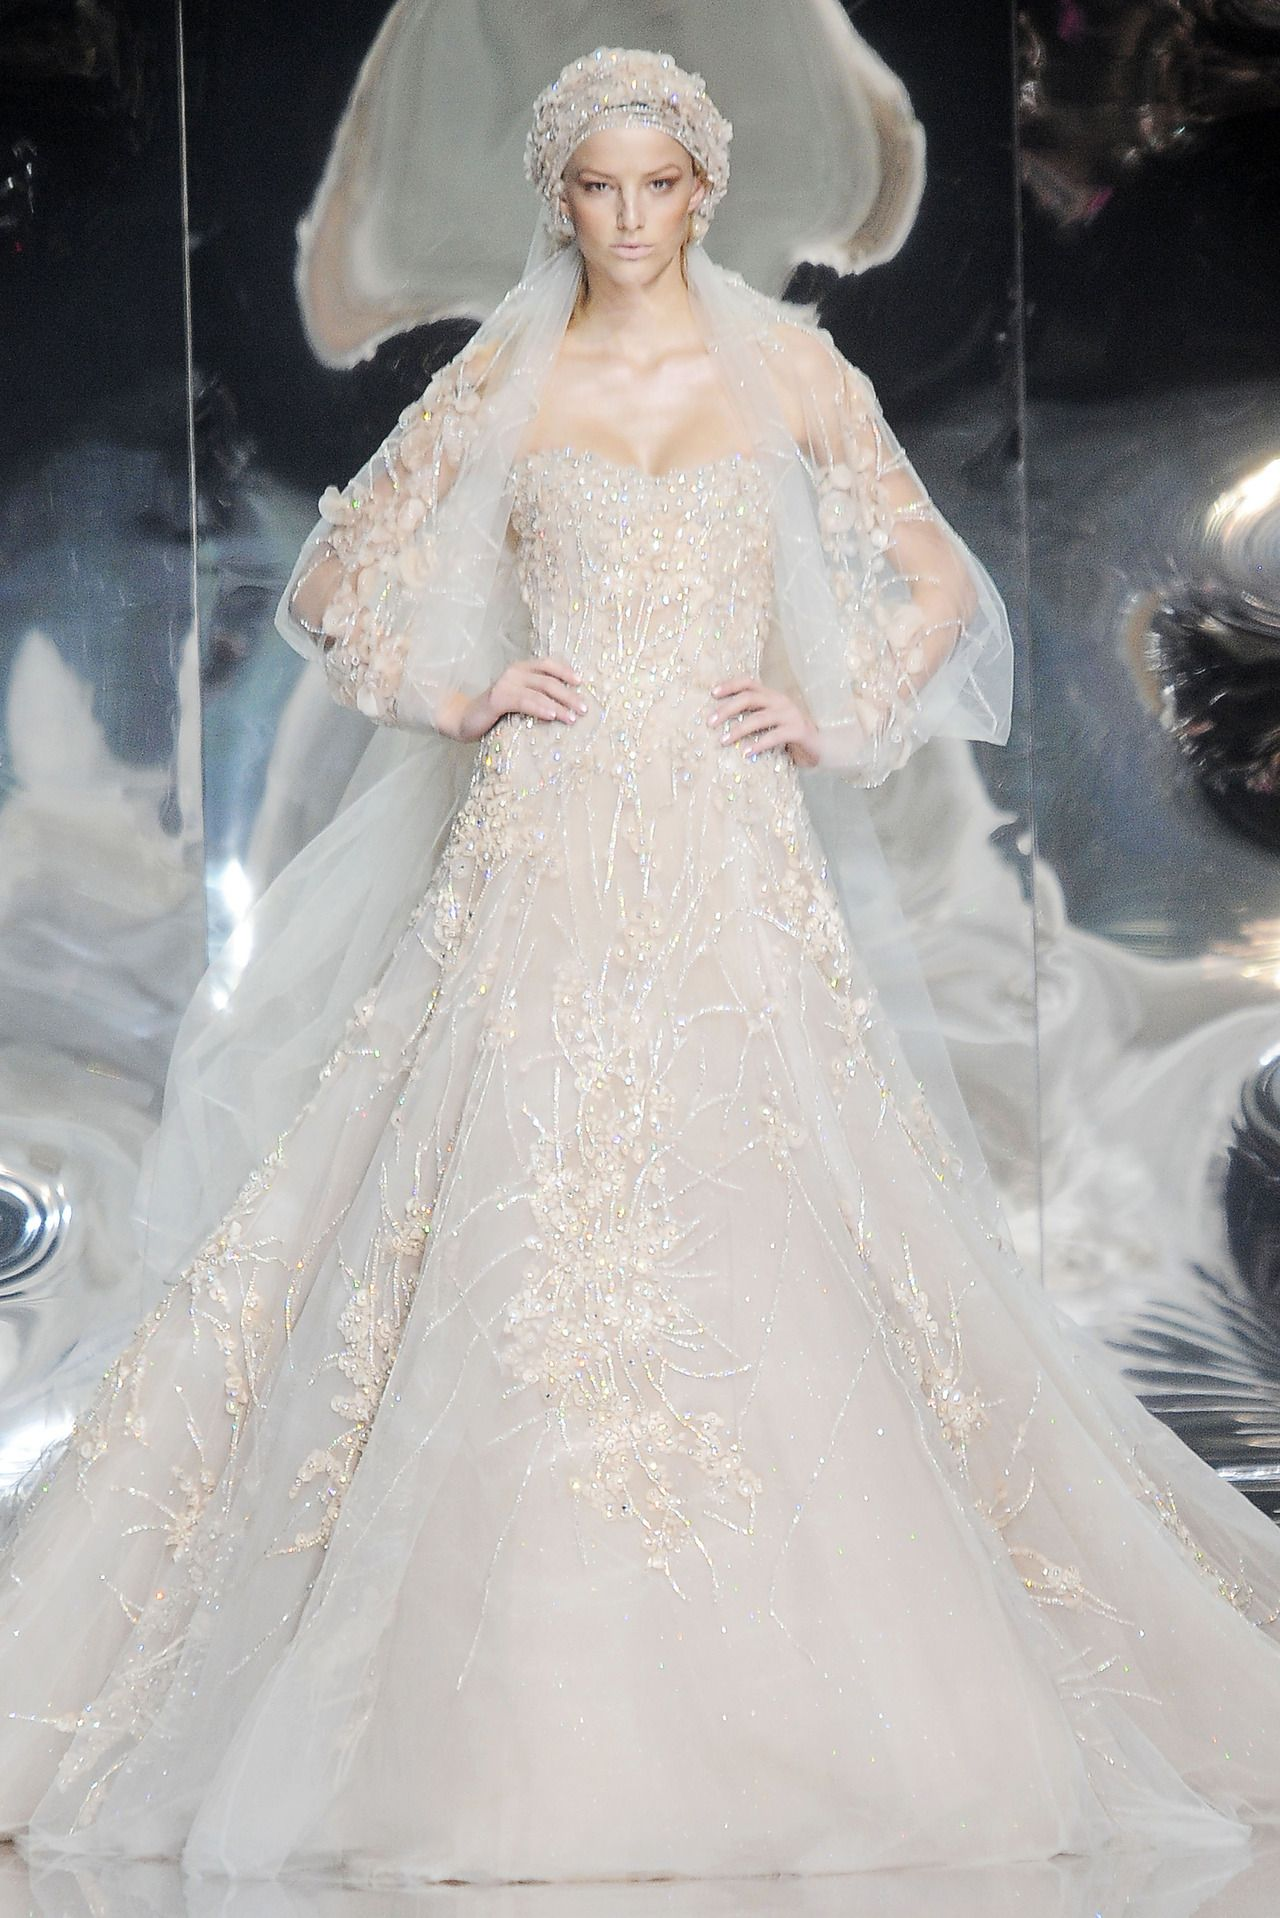 Elite wedding dresses  Sansa Stark ucQueen in the Northud  Elie Saab Haute Couture spring